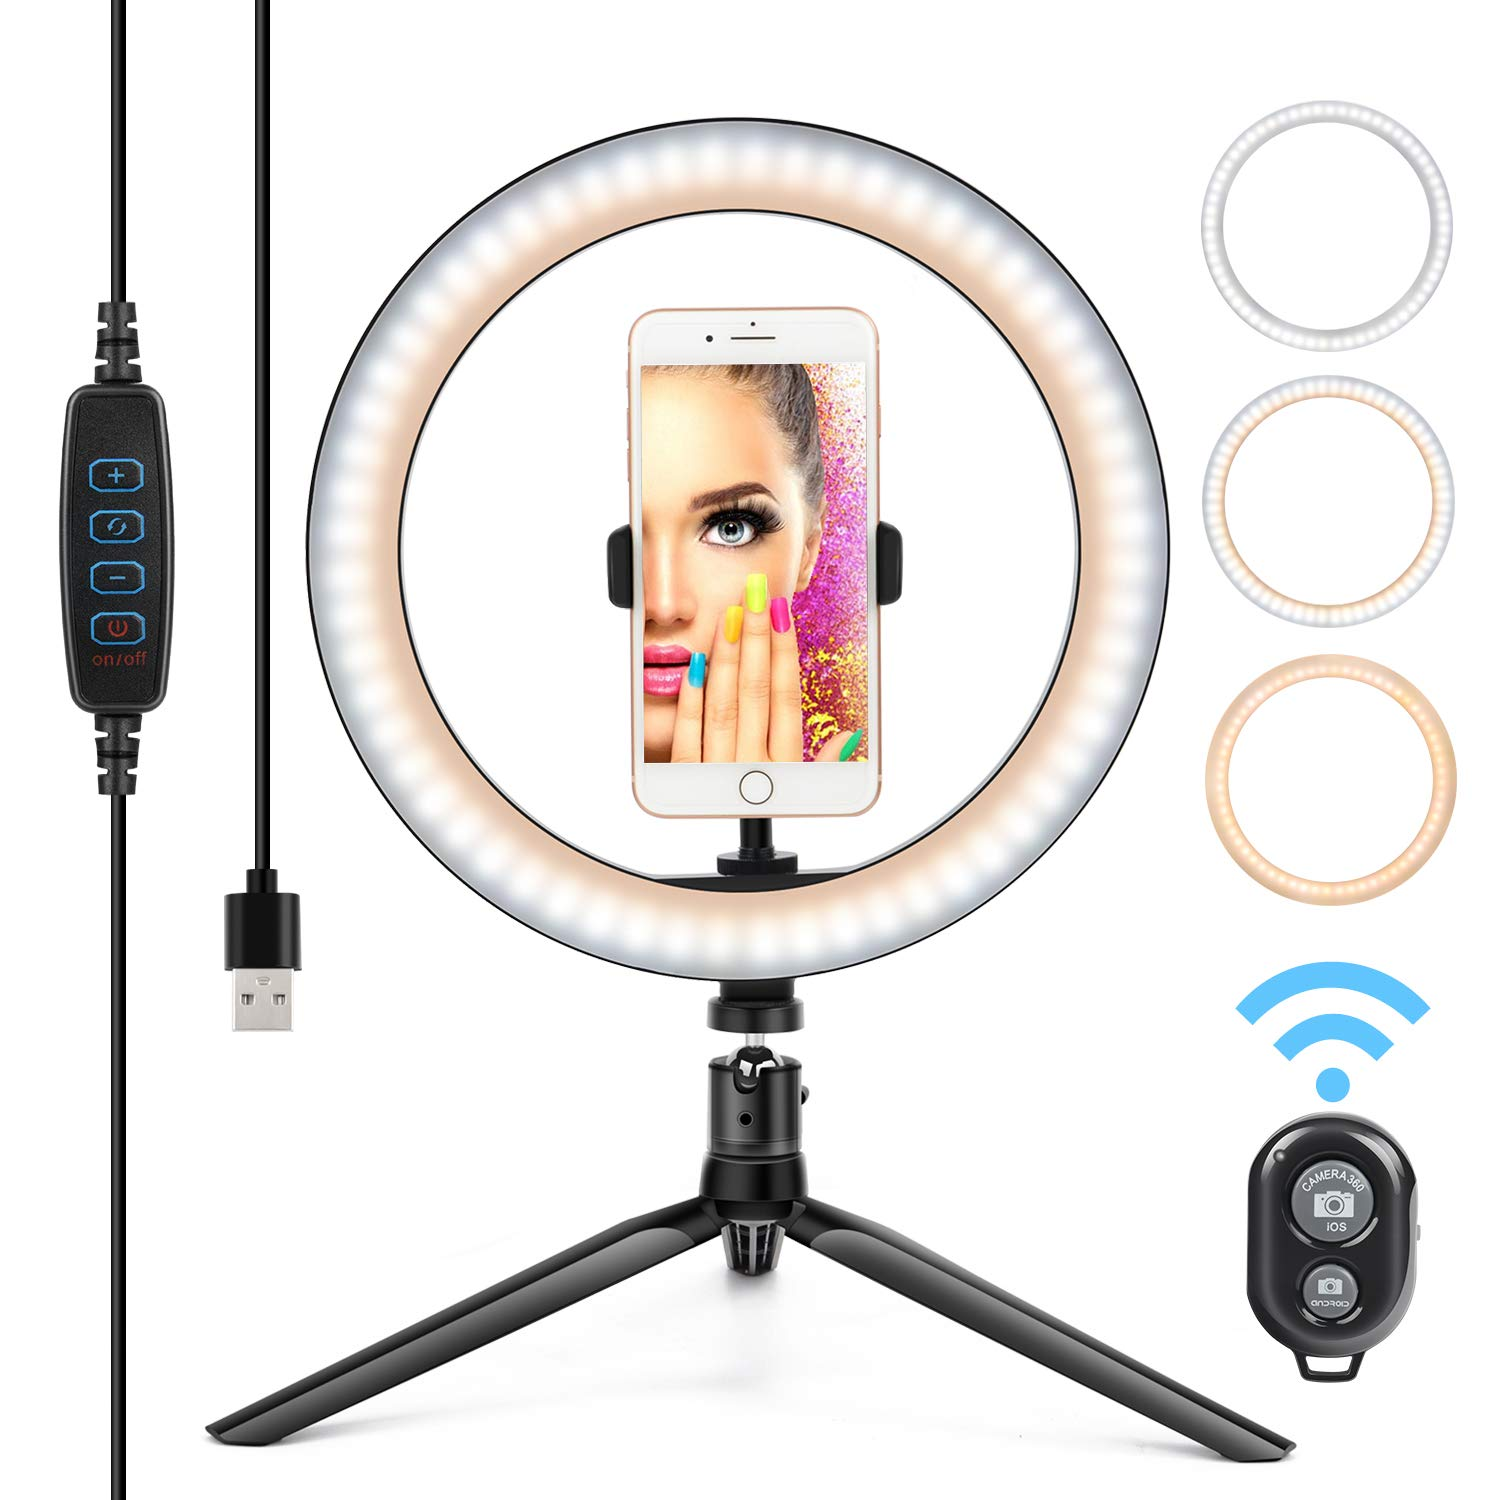 10'' Ring Light LED Desktop Selfie Lamp 2700-6500K Dimmable 3 Colors 10 Brightness with Tripod Stand & Cell Phone Holder and Remote Control for YouTube Video Makeup USB LED Desk Camera Ringlight by Yesker